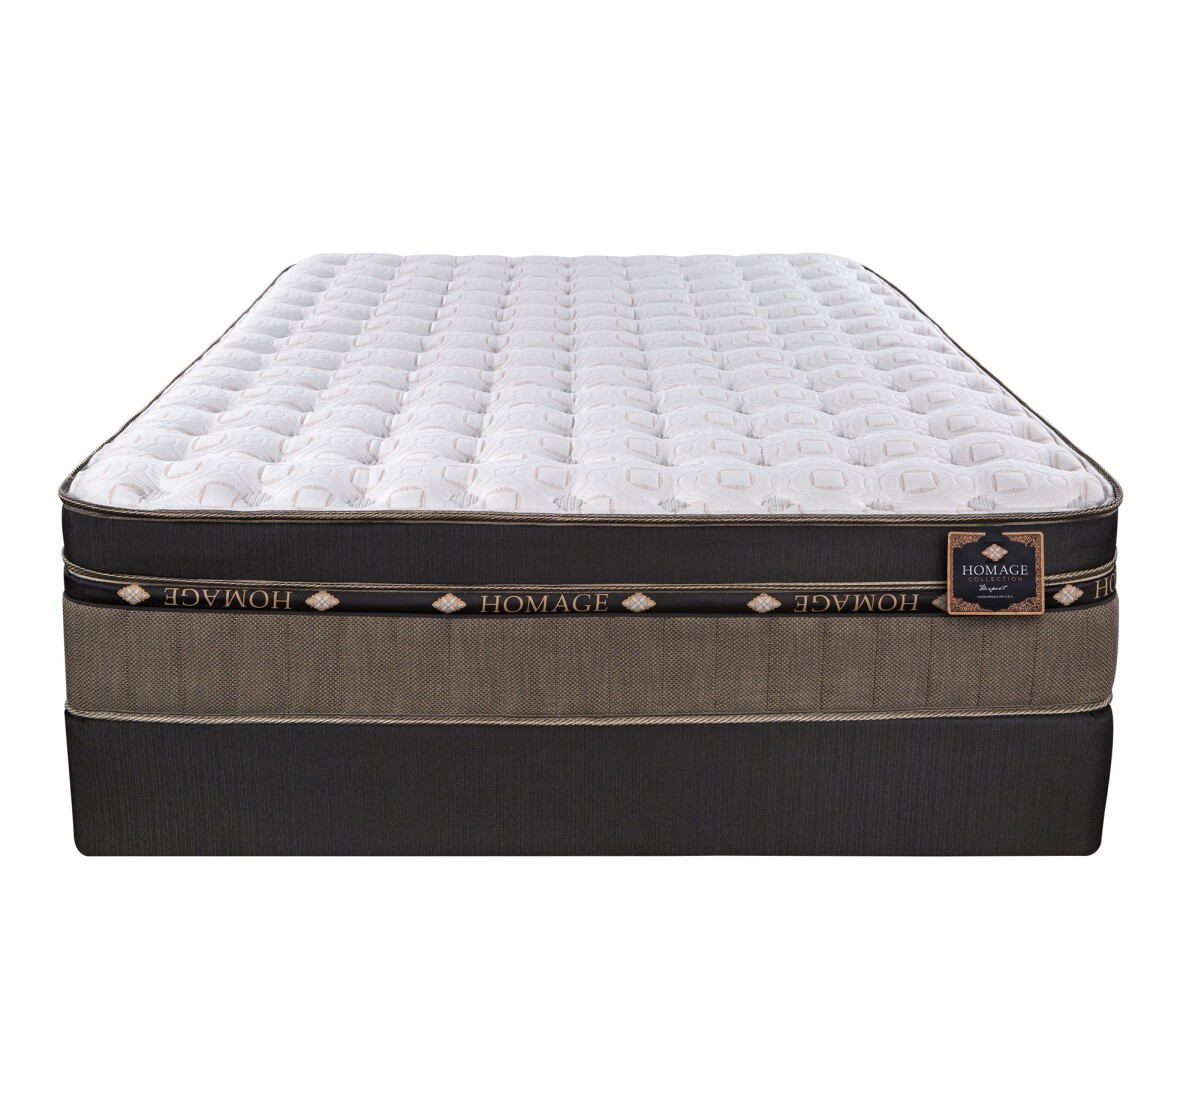 127149_Homage_Respect Plush Euro Top Mattress  (6).jpg